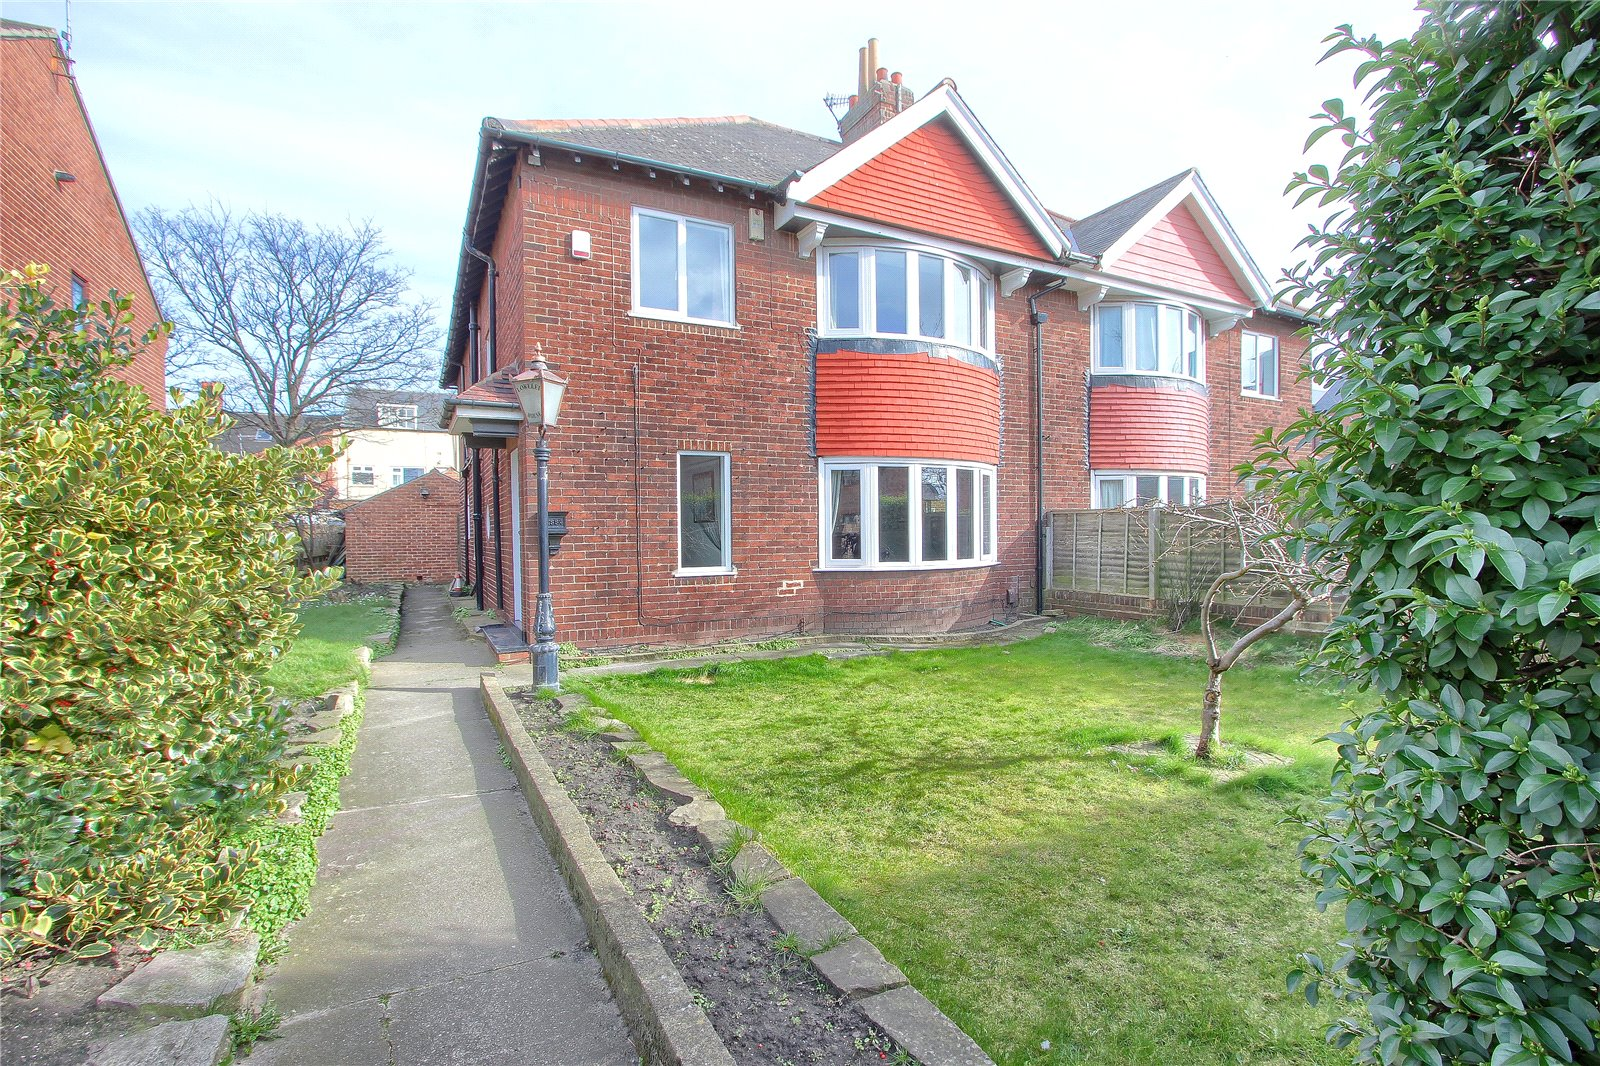 4 bed house for sale in Blenheim Terrace, Redcar - Property Image 1